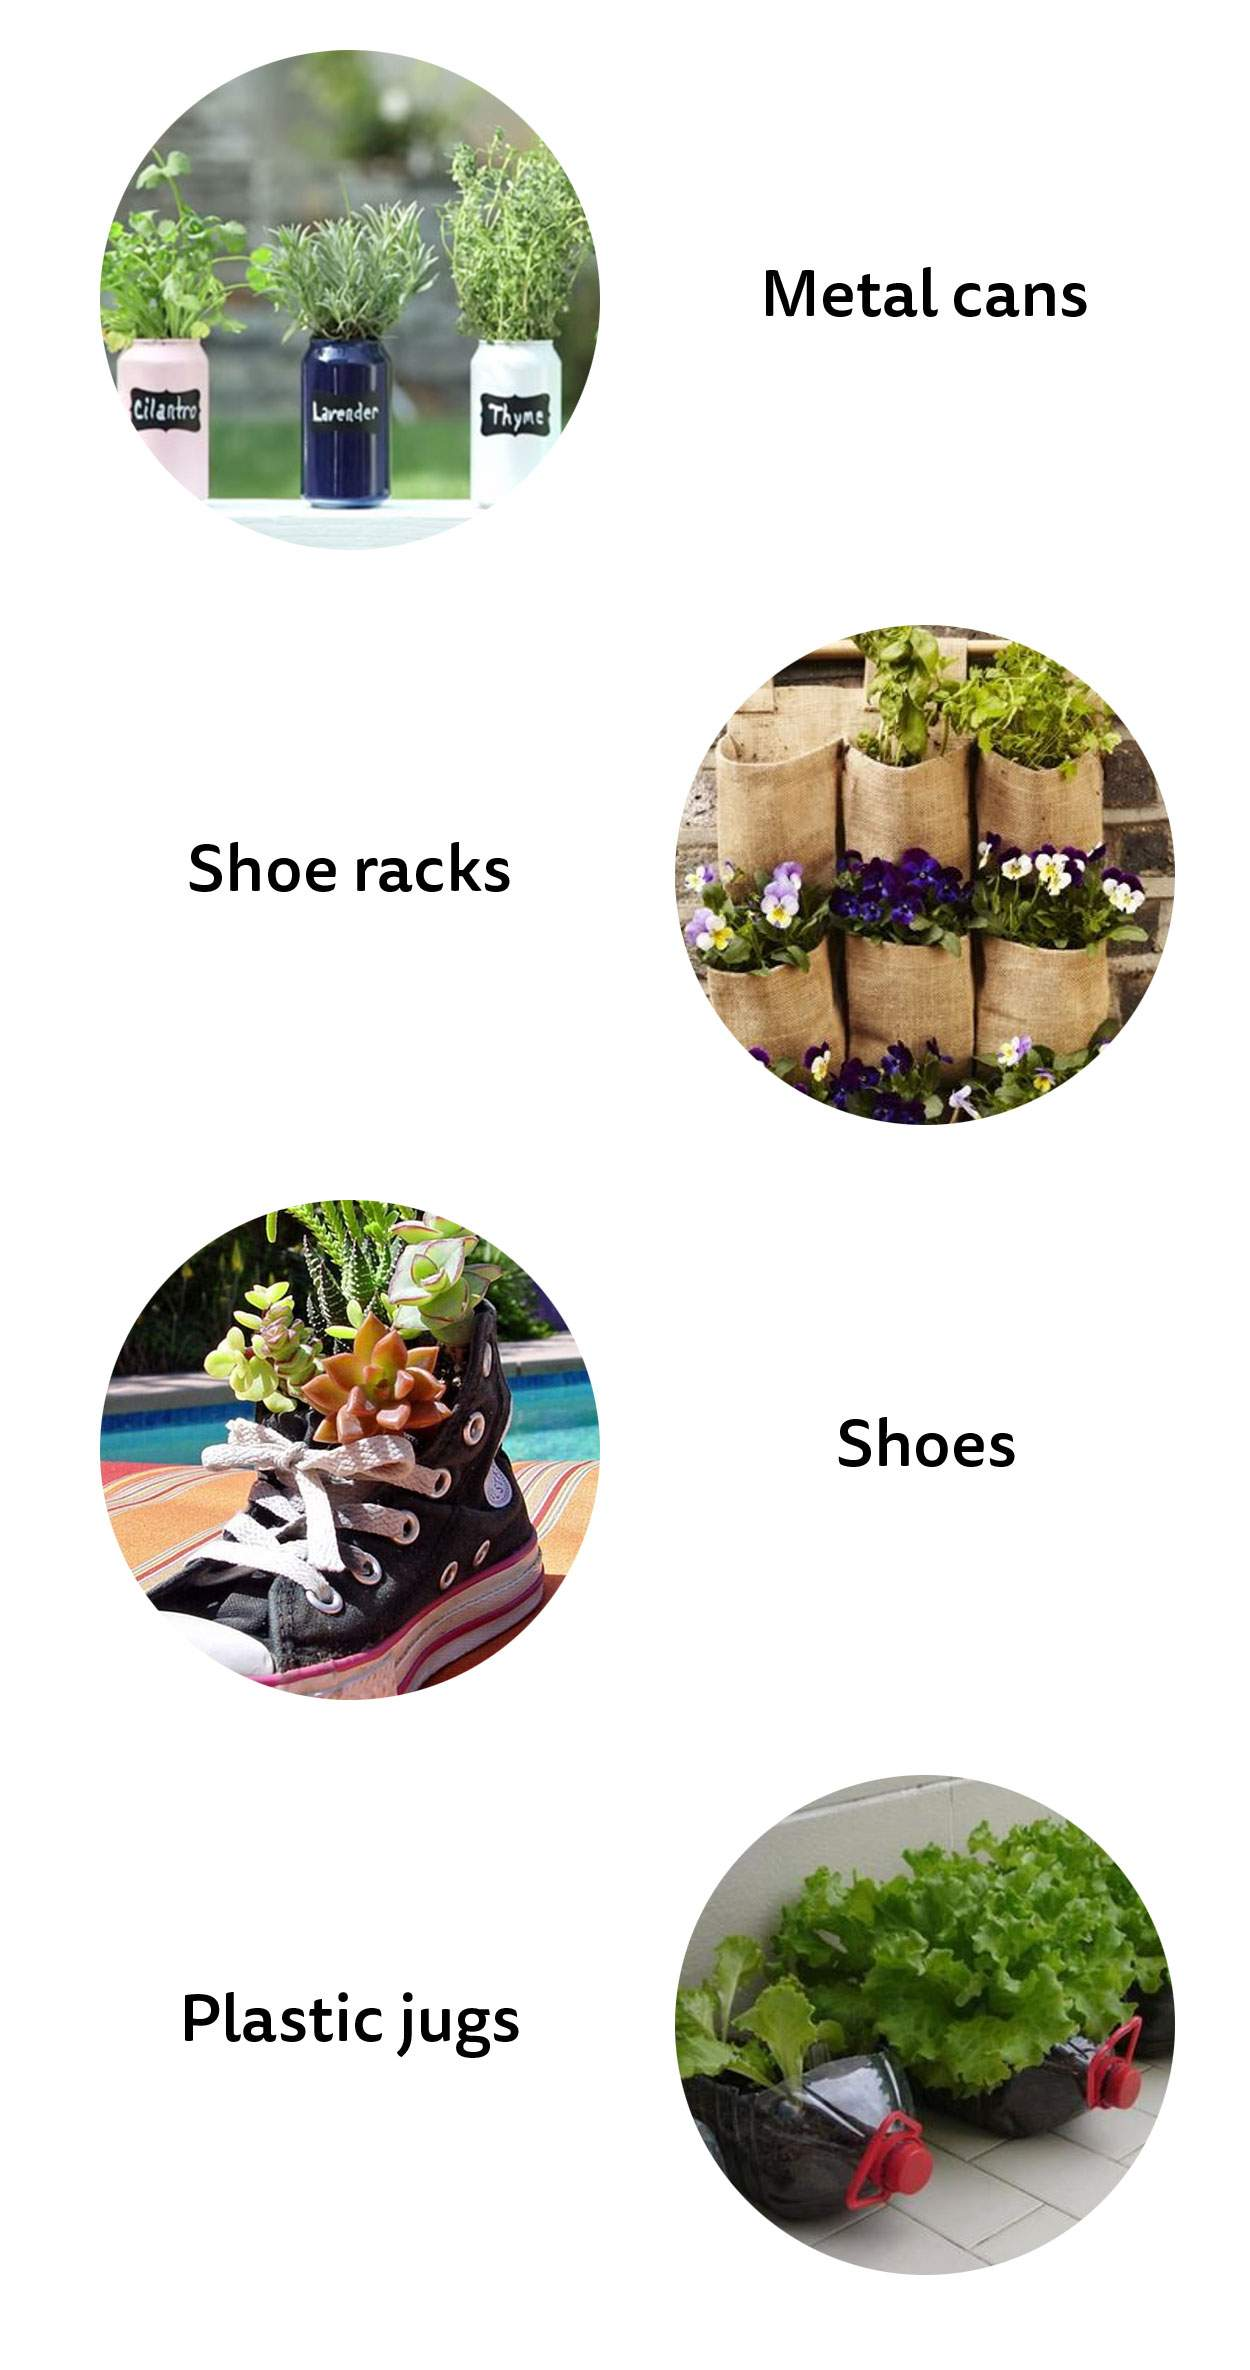 Different kinds of planters: metal cans; shoe racks; shoes; plastic jugs